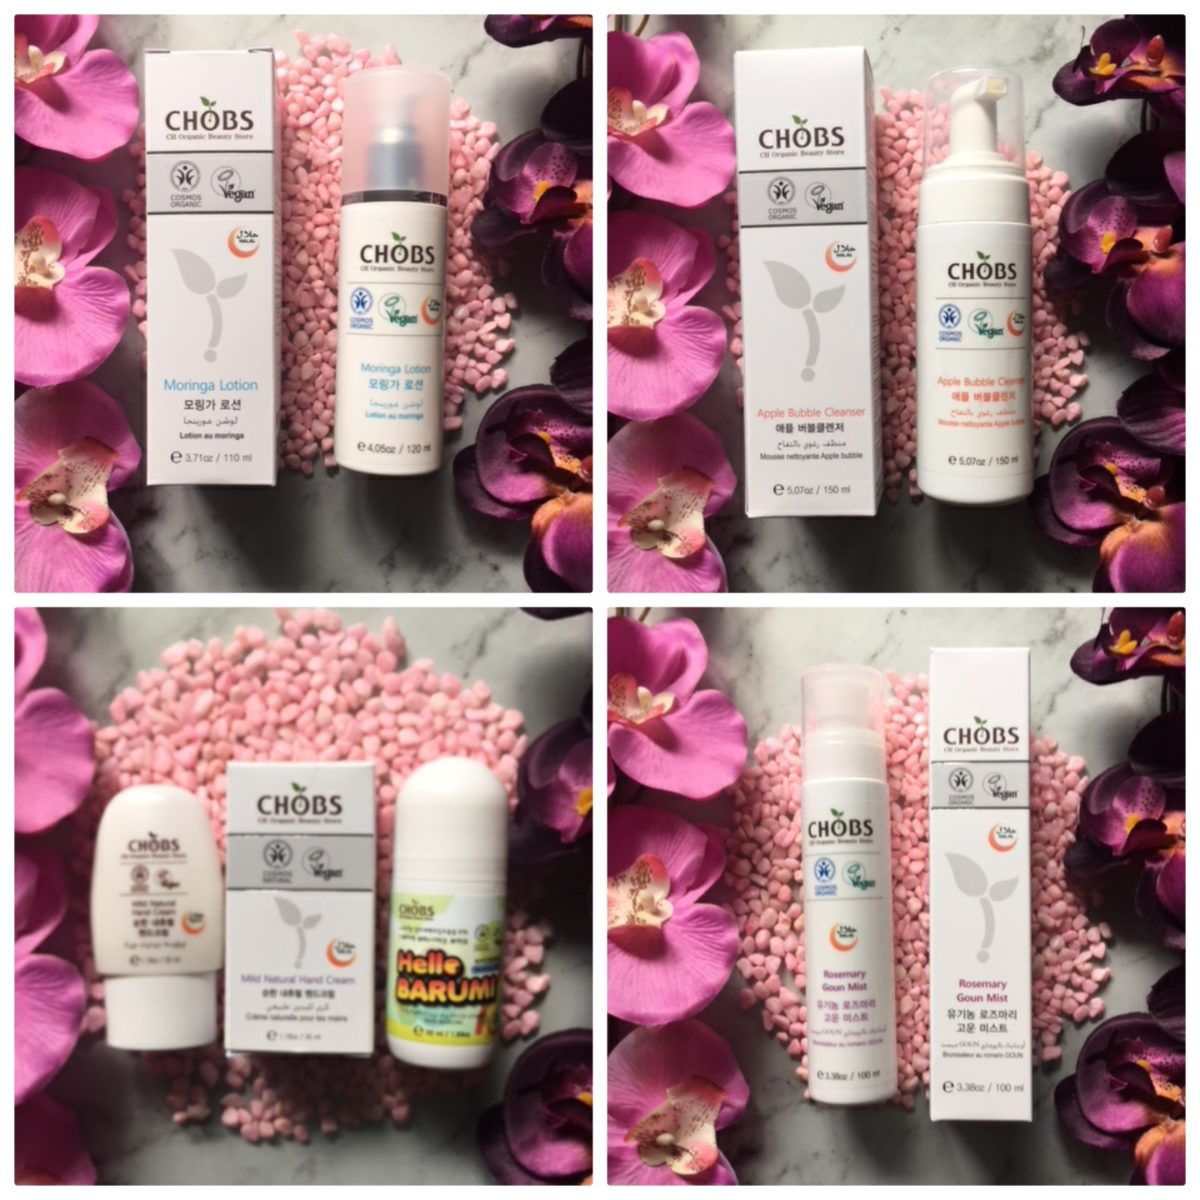 Chobs Review – Organic K-Beauty Korean Skincare [AD]